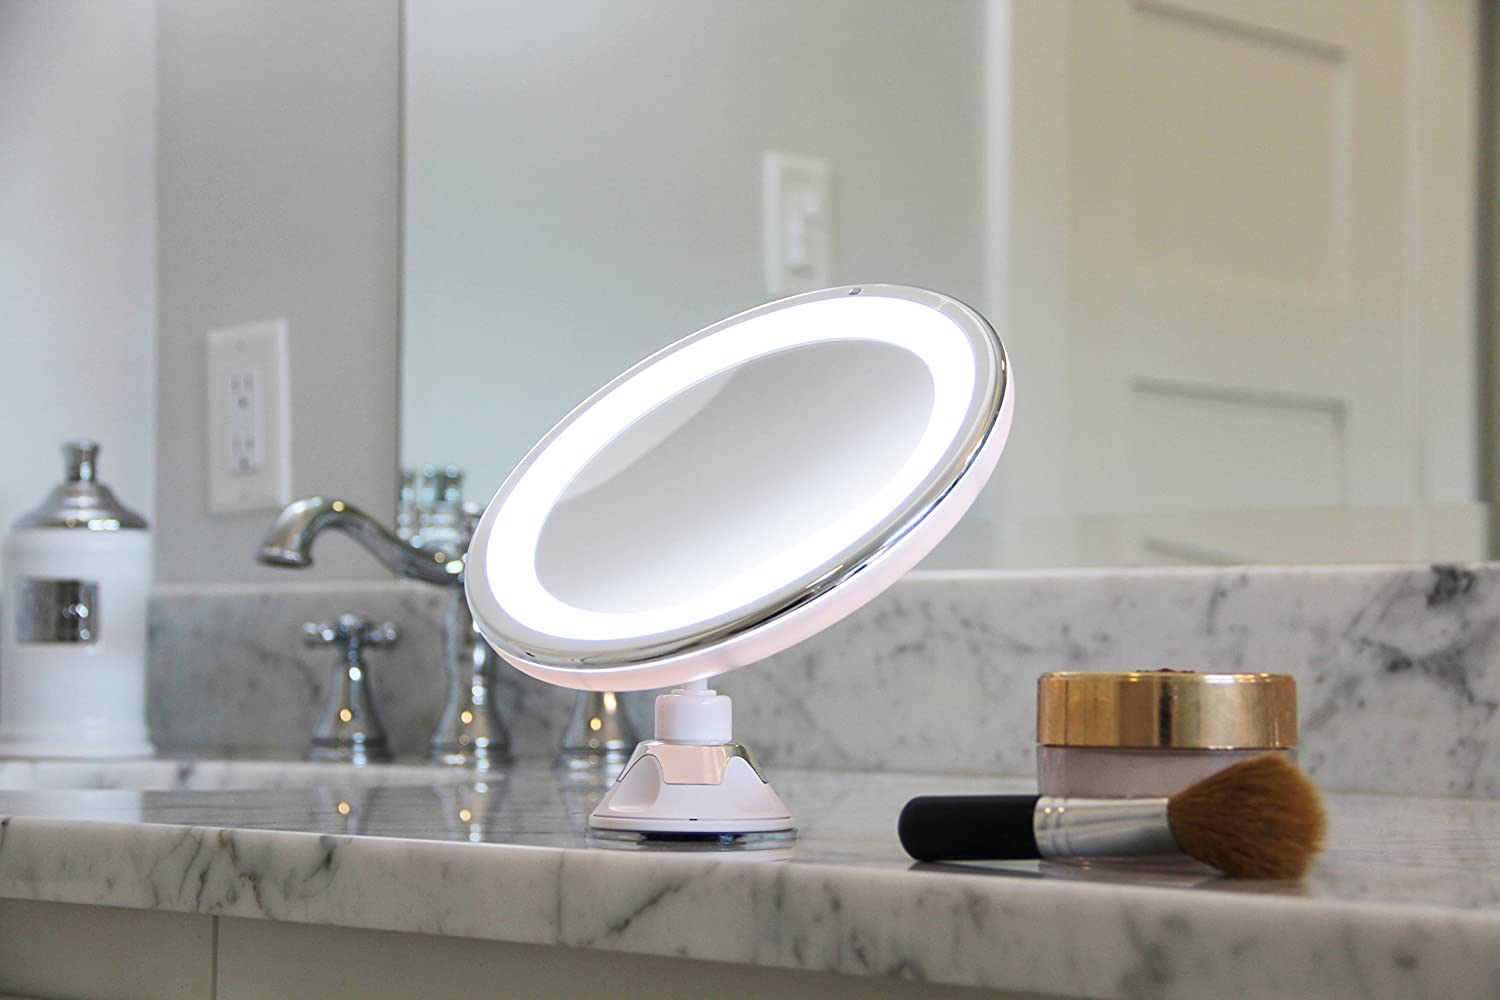 Amazon.com: LED Makeup Mirror - Adjustable 5x Magnification Lighted ...